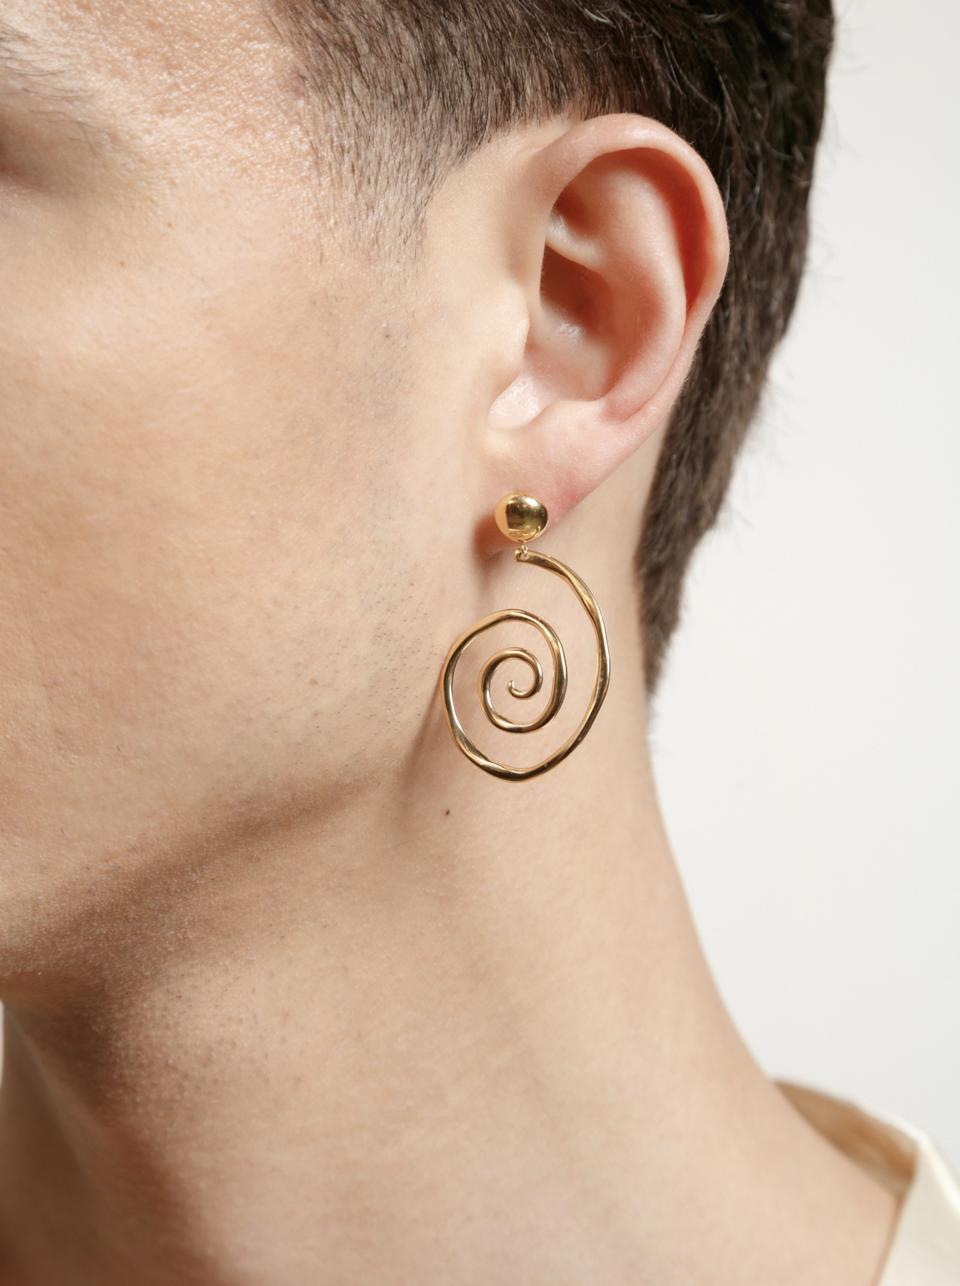 Wolf Circus Venus Earrings in recycled 14k gold plating over bronzer from the Contour collection.